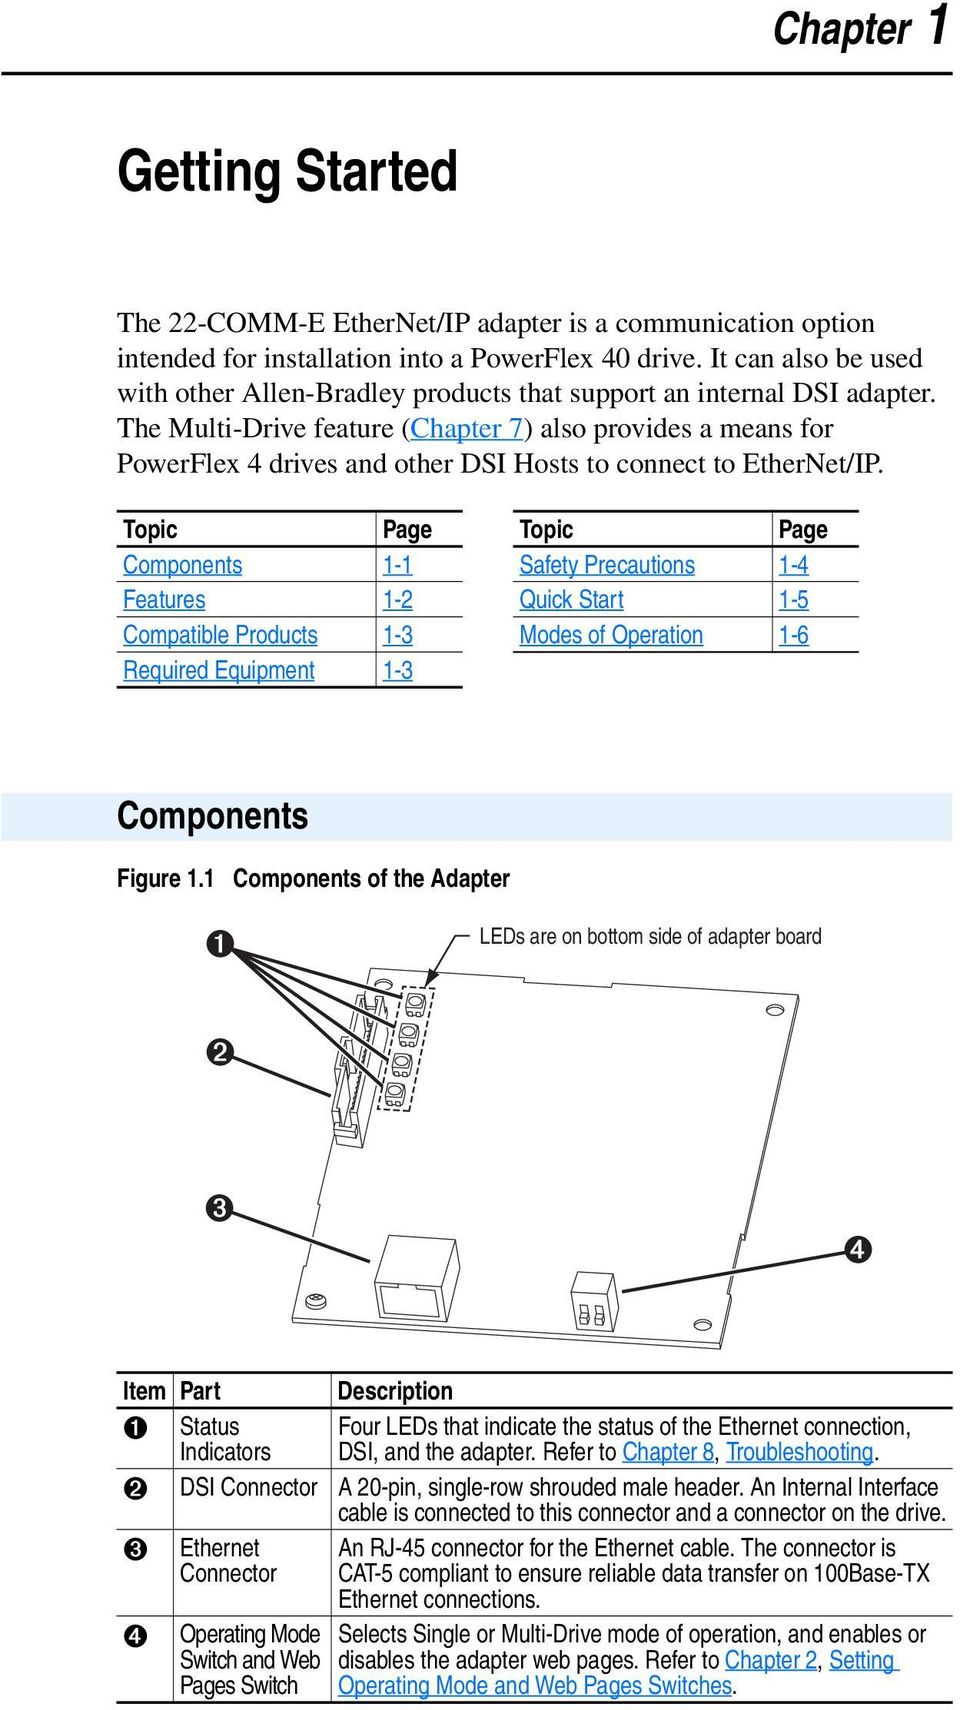 medium resolution of the multi drive feature chapter 7 also provides a means for powerflex 4